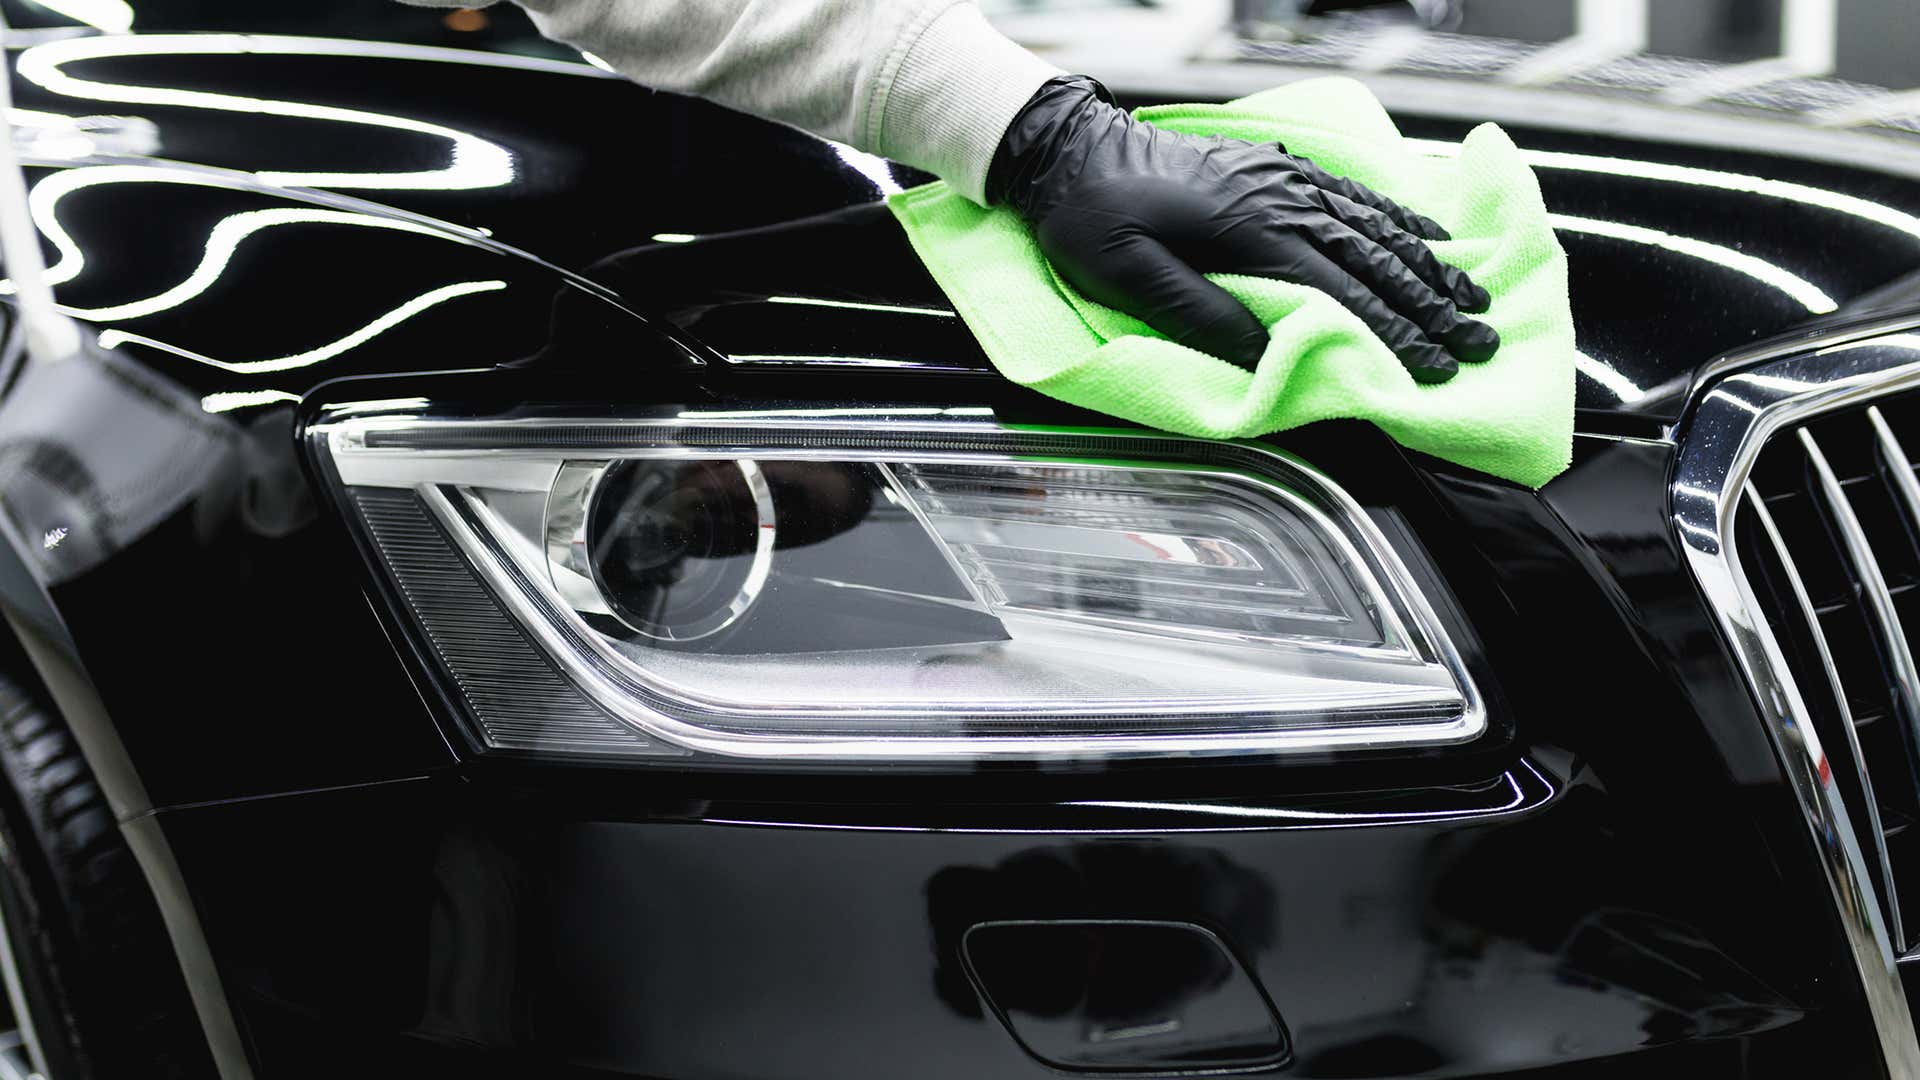 Always use microfiber towels when detailing a car.